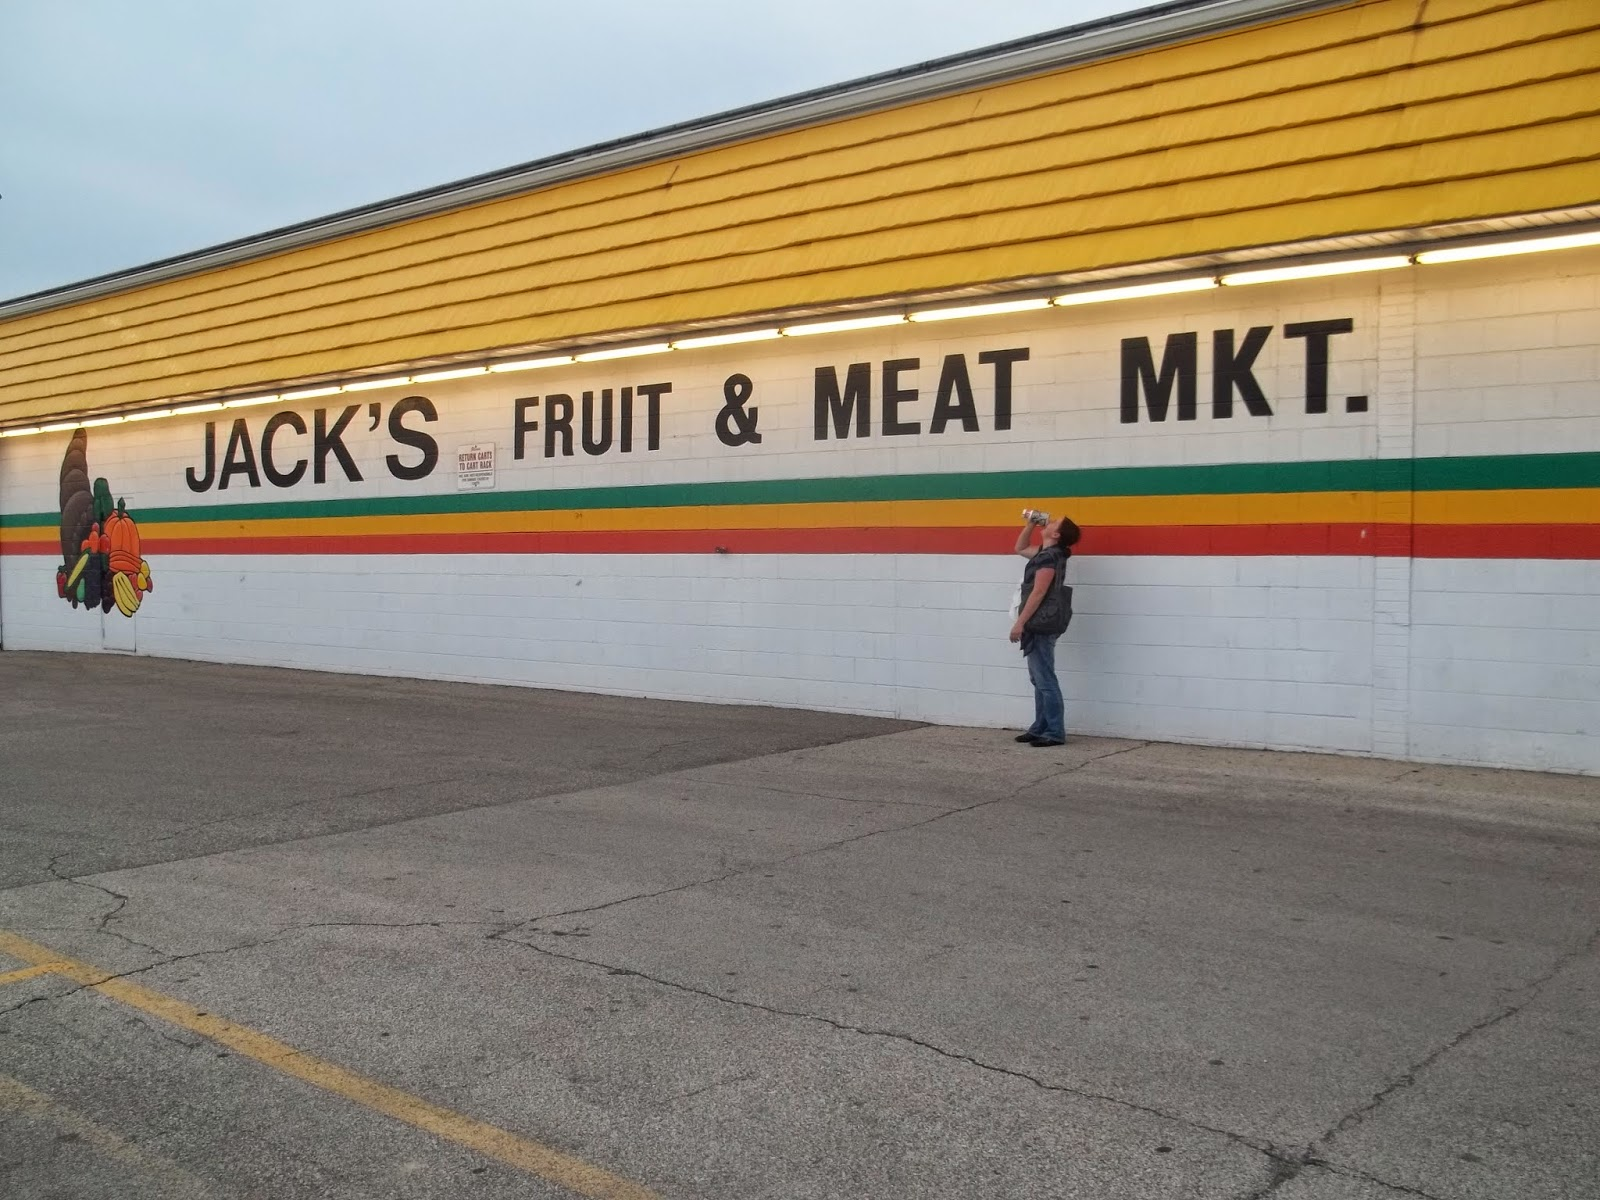 apparently this was a cool grocery store when aaron was there